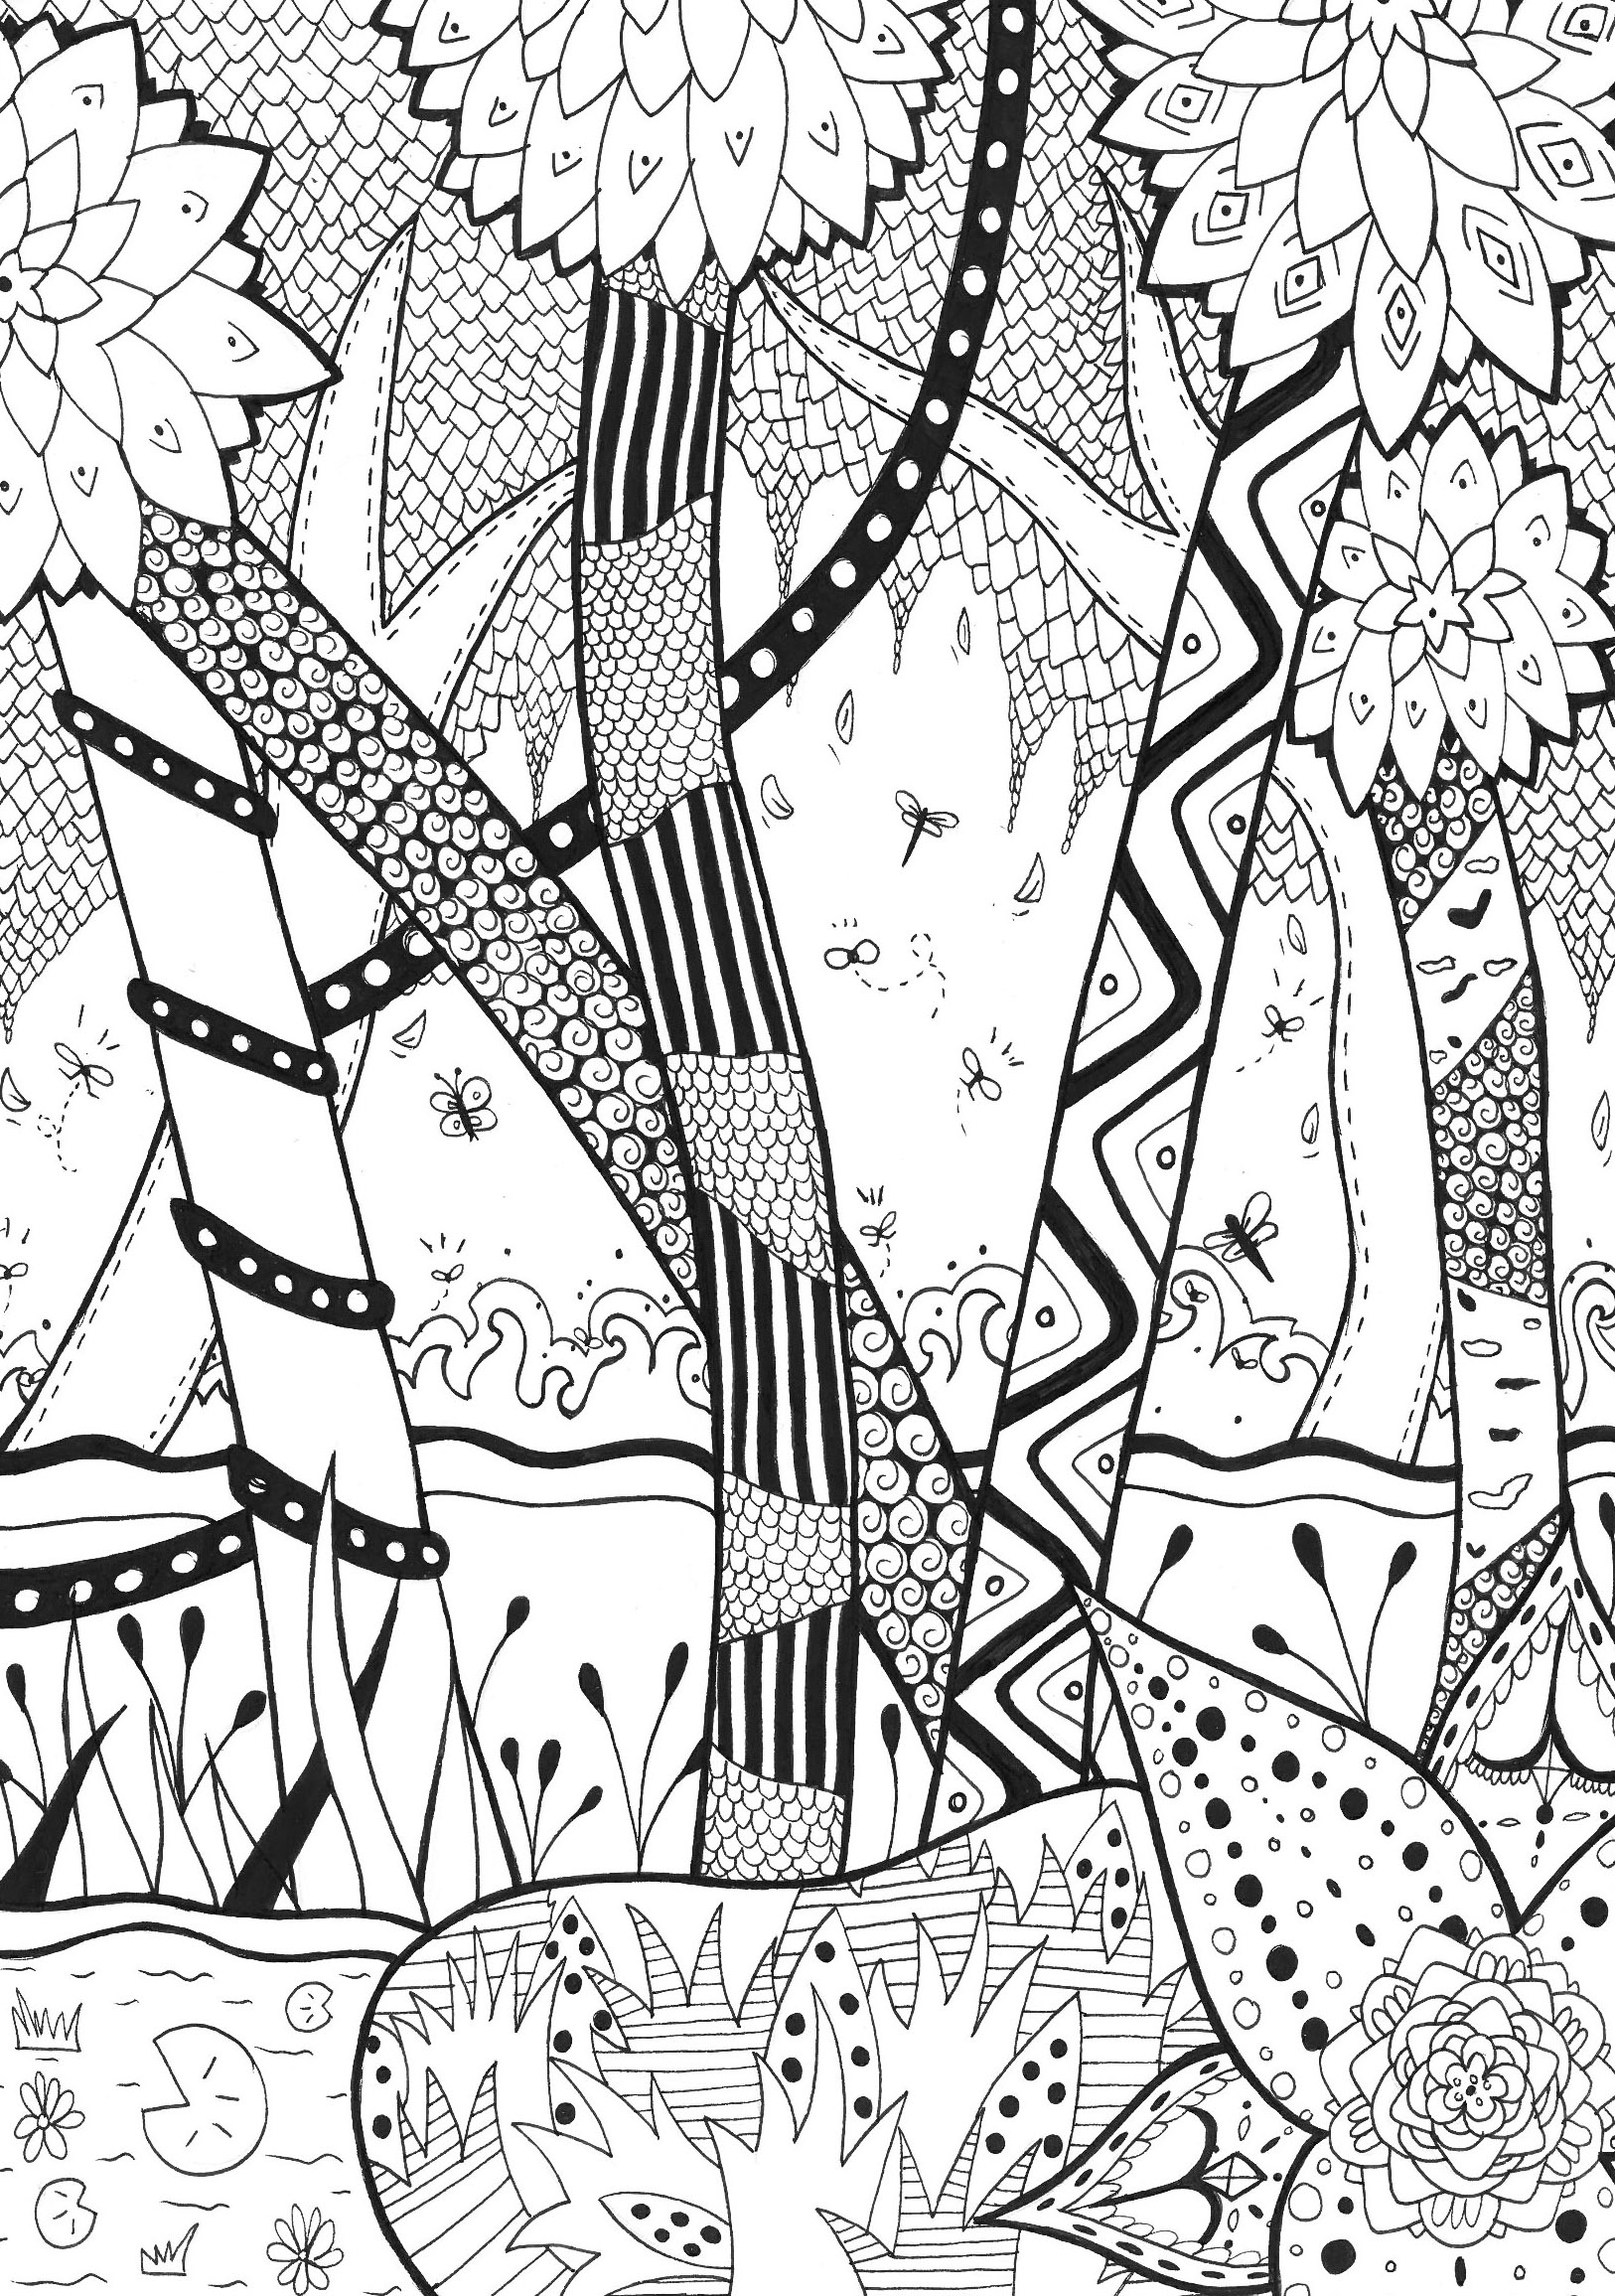 zentangle coloring pages free printable printable zentangle coloring pages free coloring home printable free zentangle coloring pages